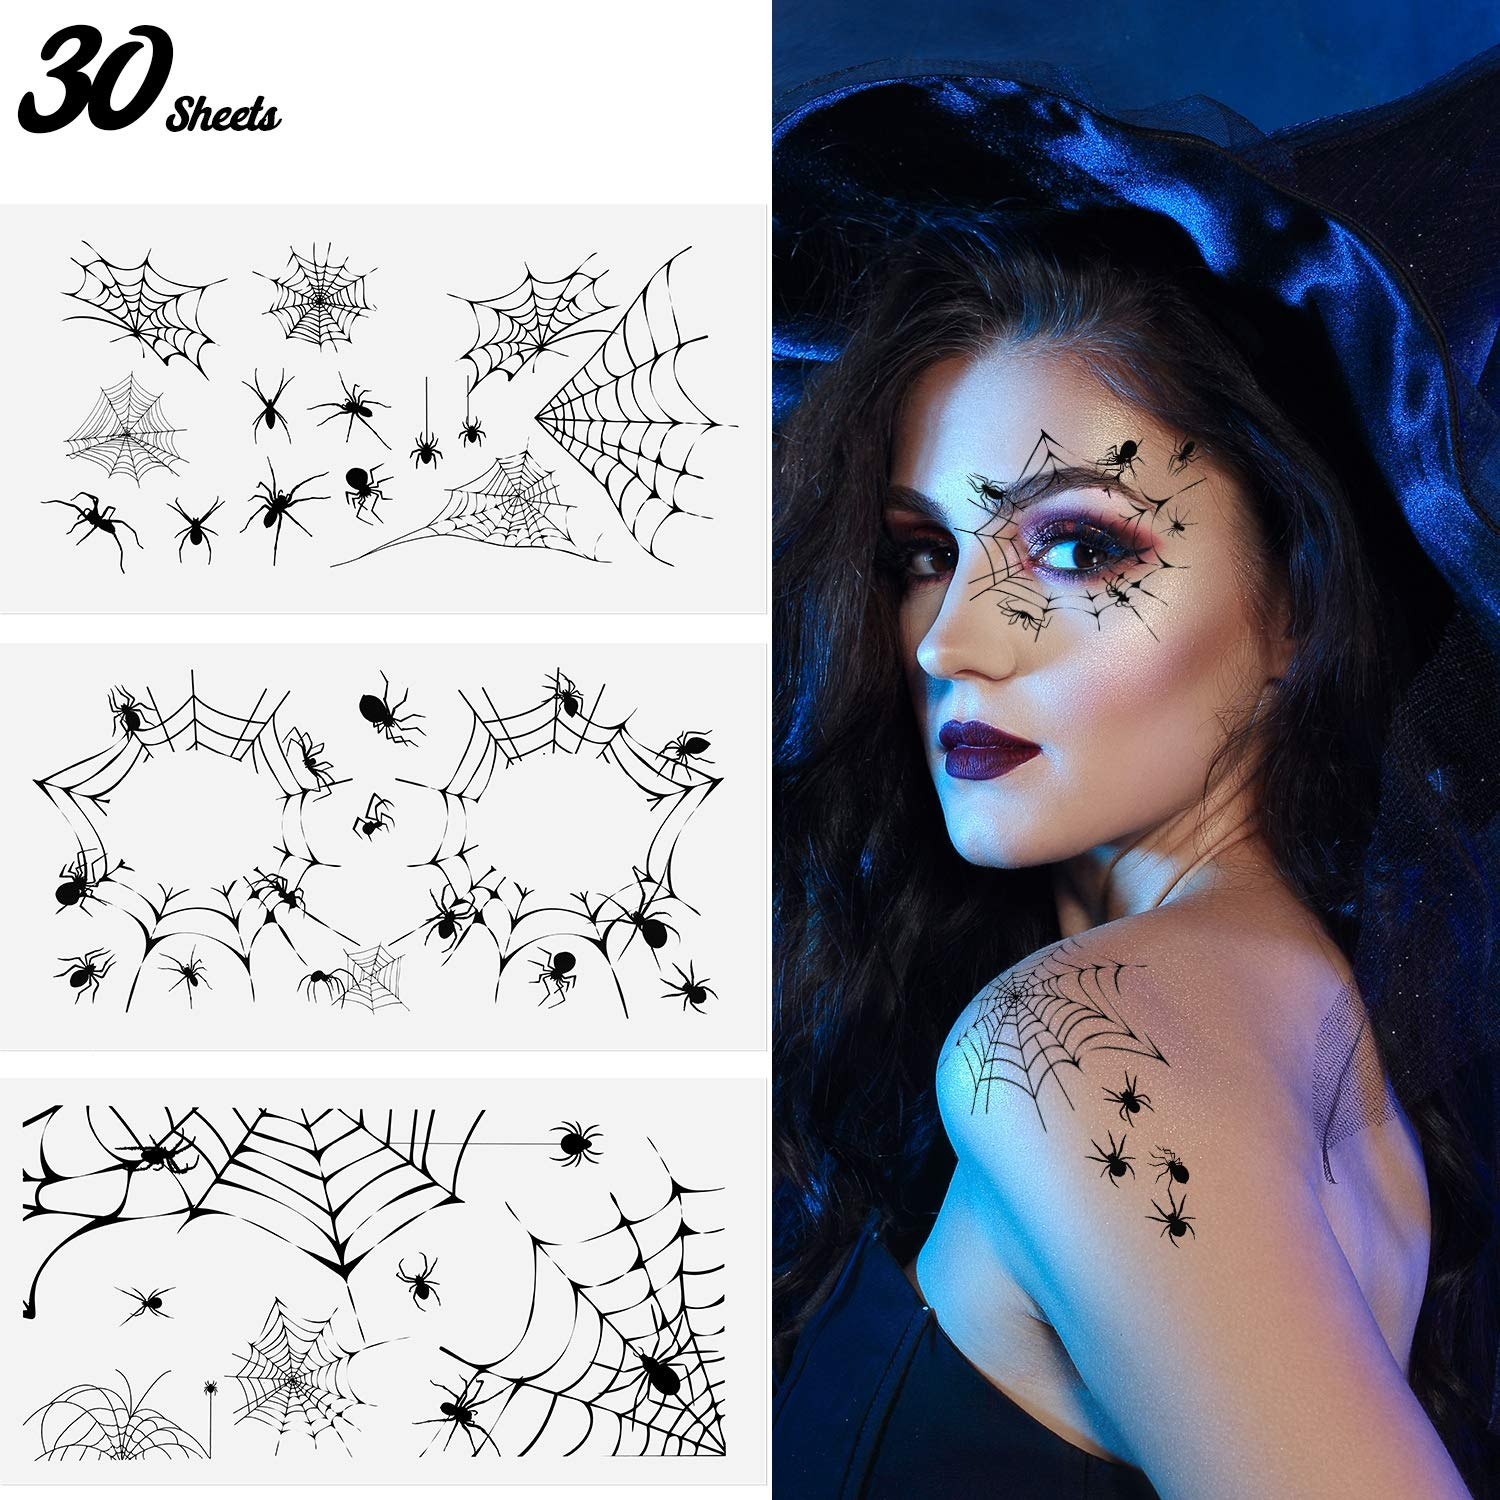 30 Sheets Halloween Spider and Spider Web Temporary Tattoos Stickers for Halloween Witch Costume Party on Face Cheek Arm Hand Ankle (Style 5)